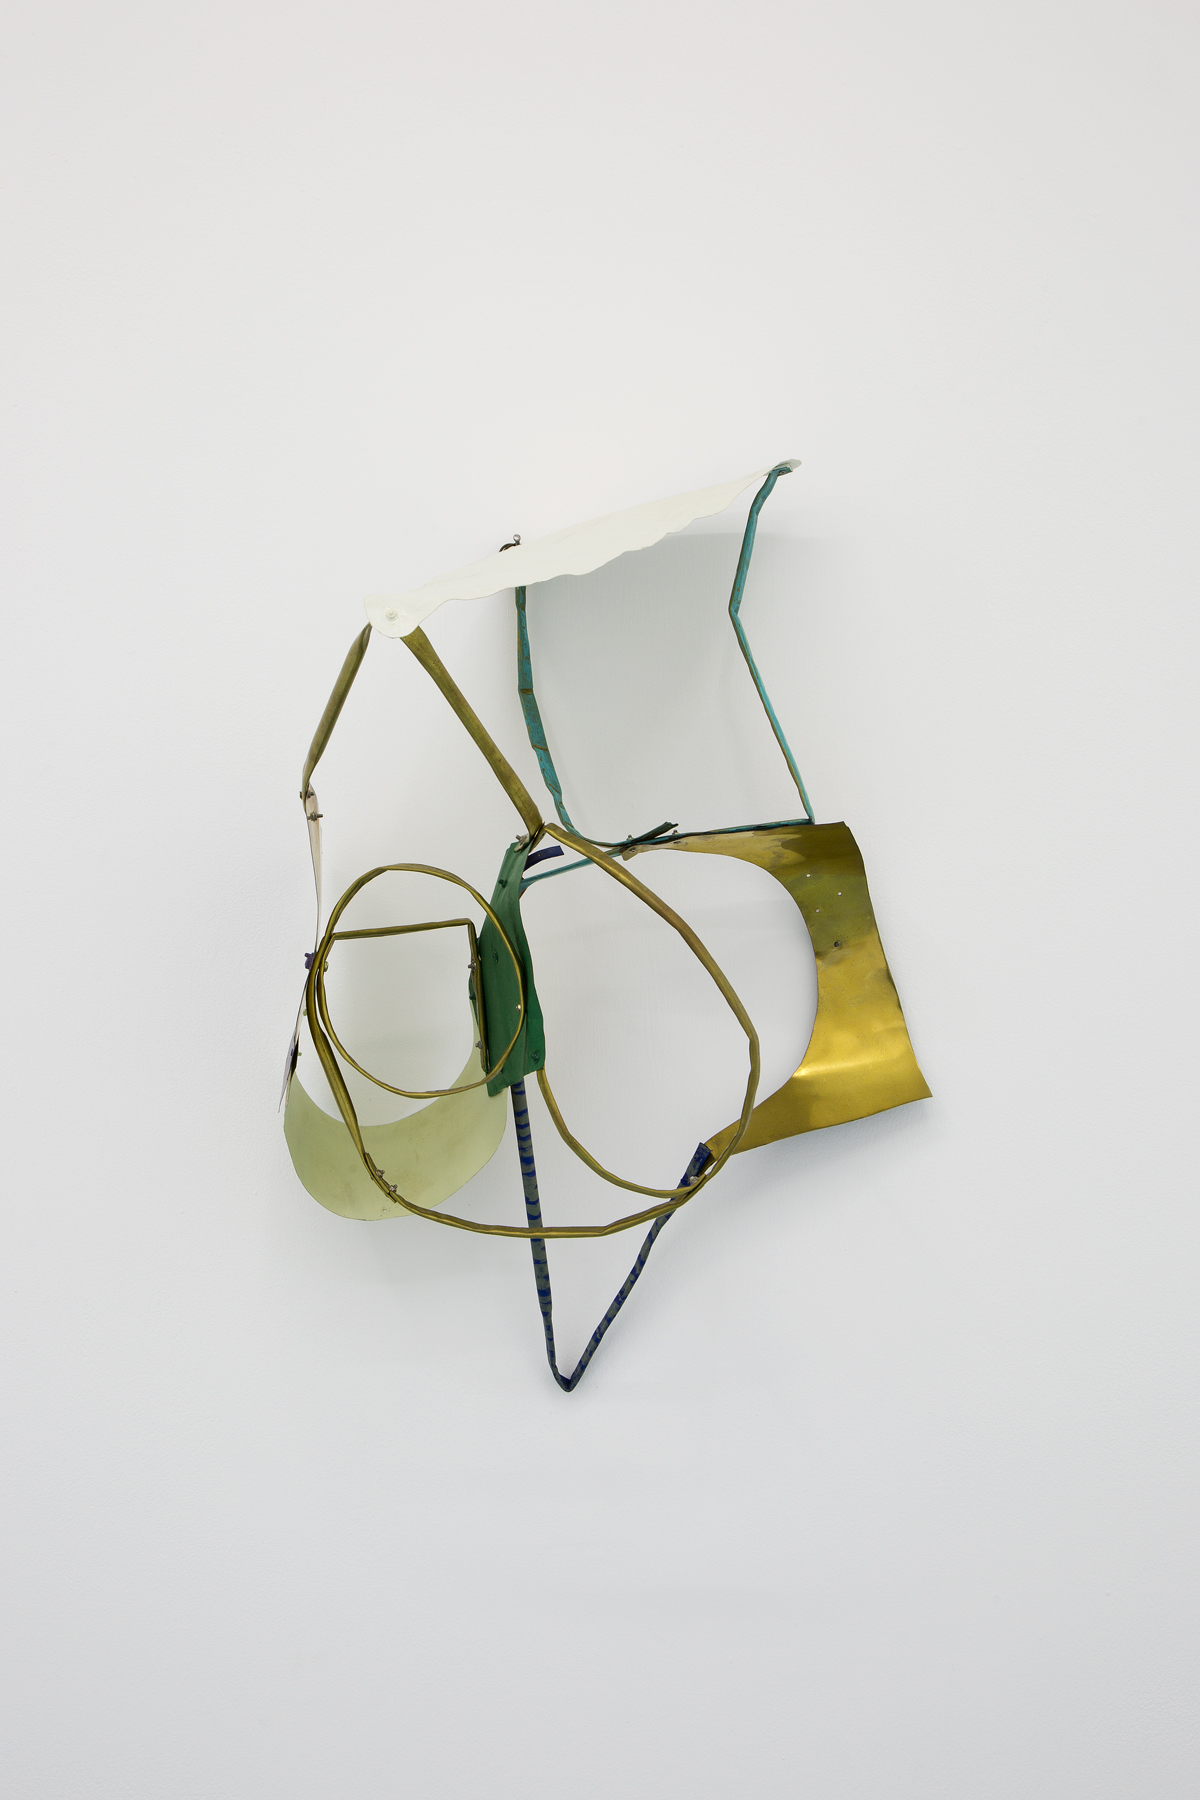 Miho Dohi, Buttai 25, 2013.  Brass, acrylic and paint, h55 x w38 x d33 cm (21.65 x 14.96 x 12.99 in.)